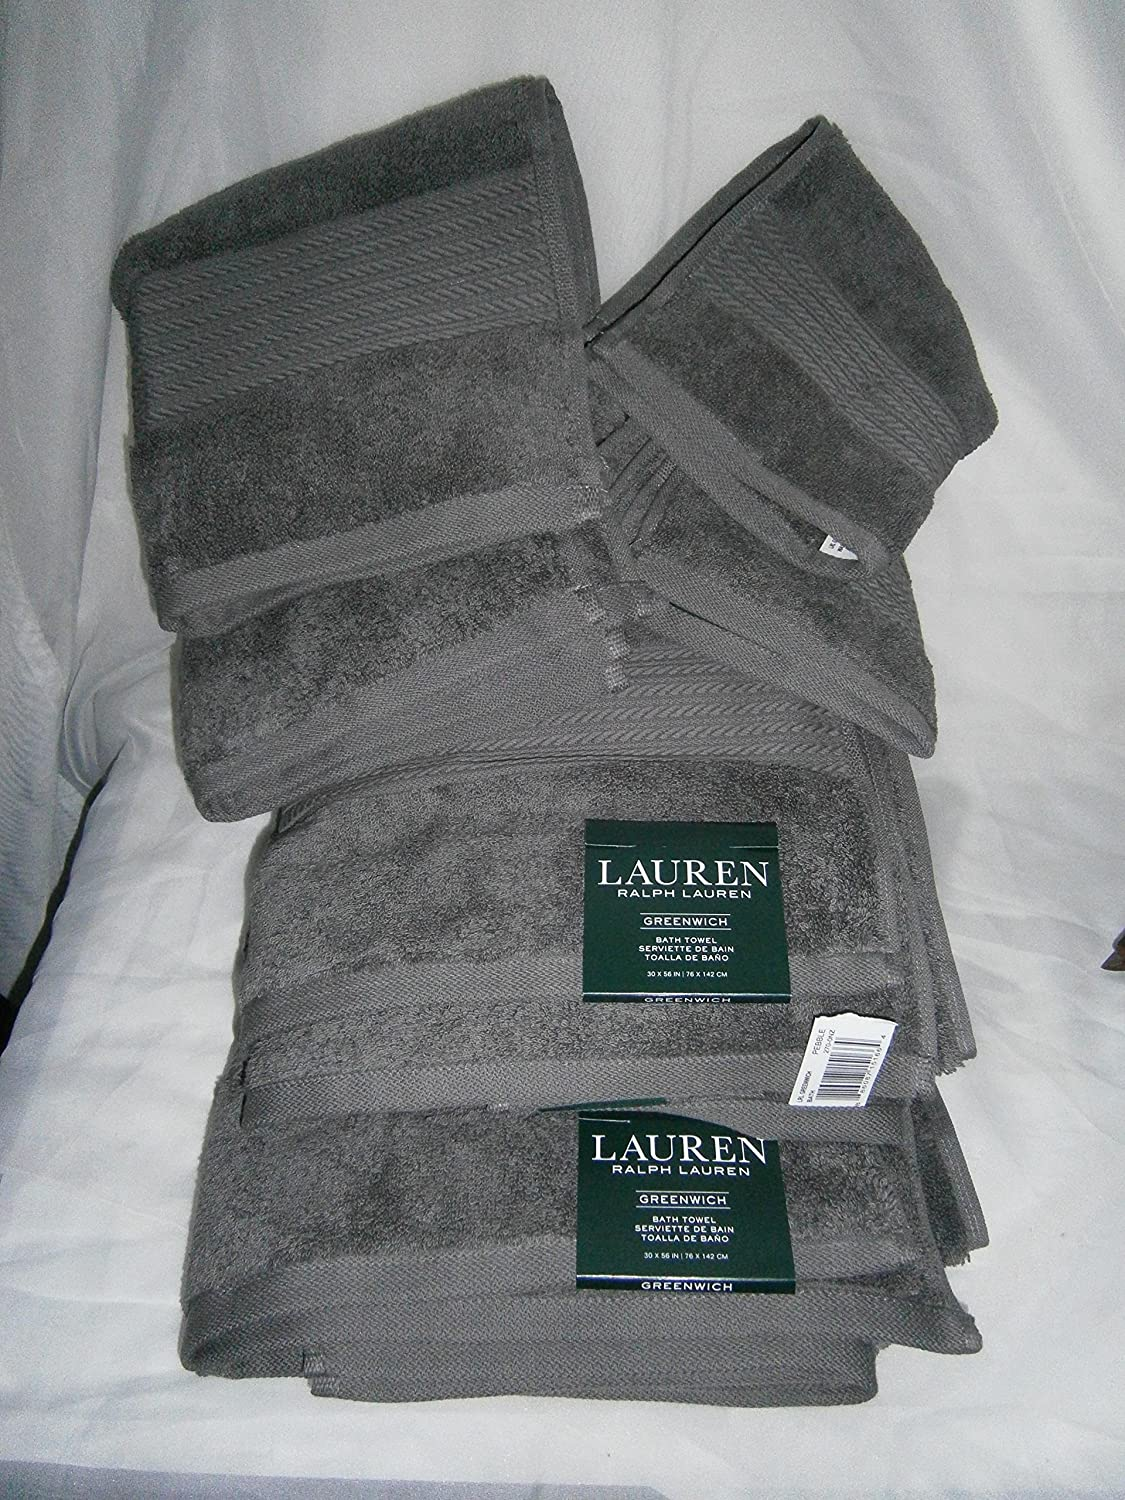 Lauren Greenwich Dark PEBBLE Grey / Gray Towels Six Piece Set - 2 Bath, 2 Hand, 2 Washcloths polo Ralph Lauren